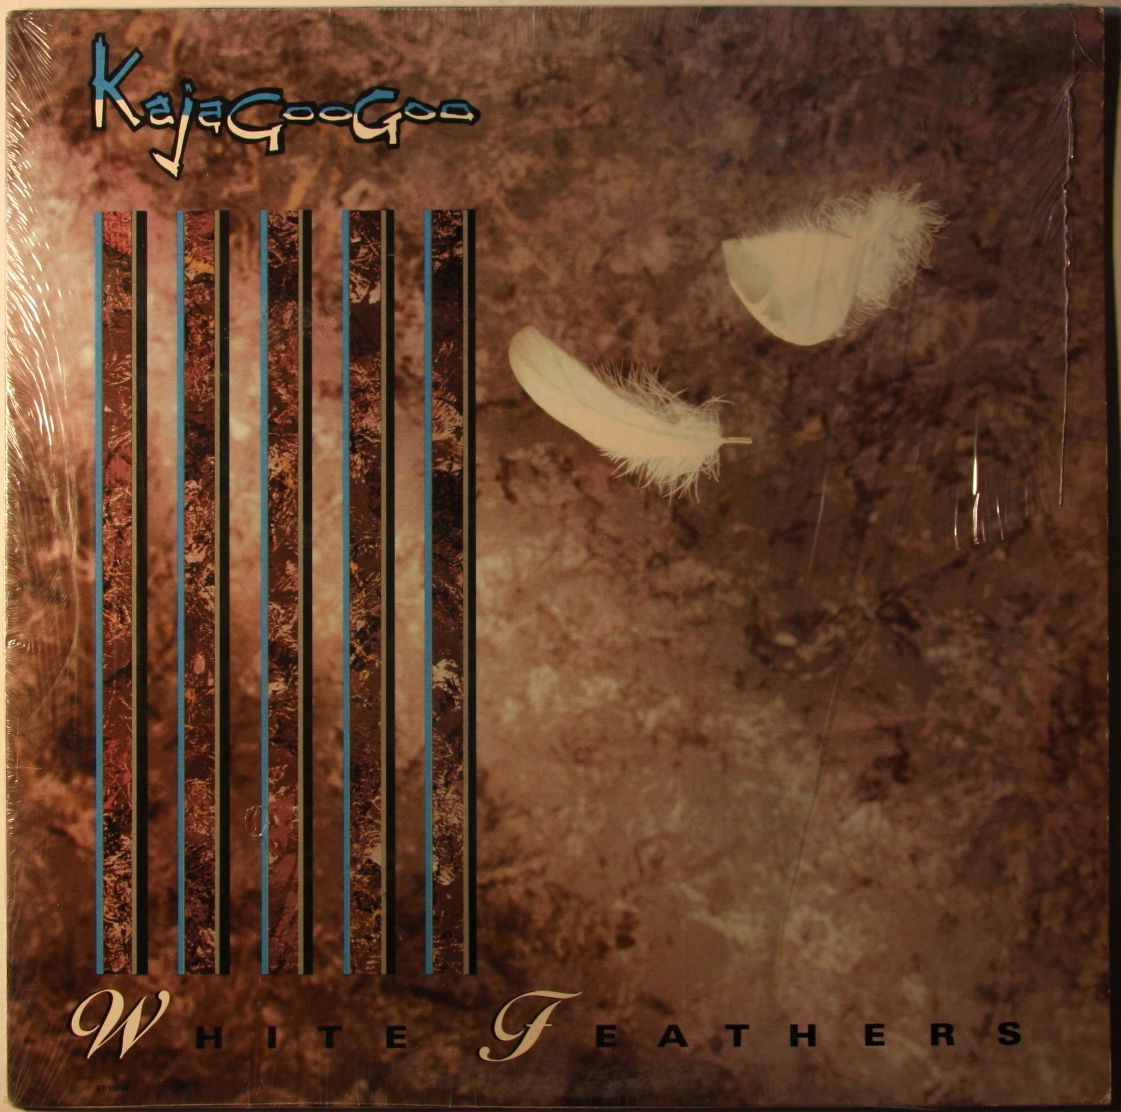 Kajagoogoo White Feathers Records Vinyl And Cds Hard To